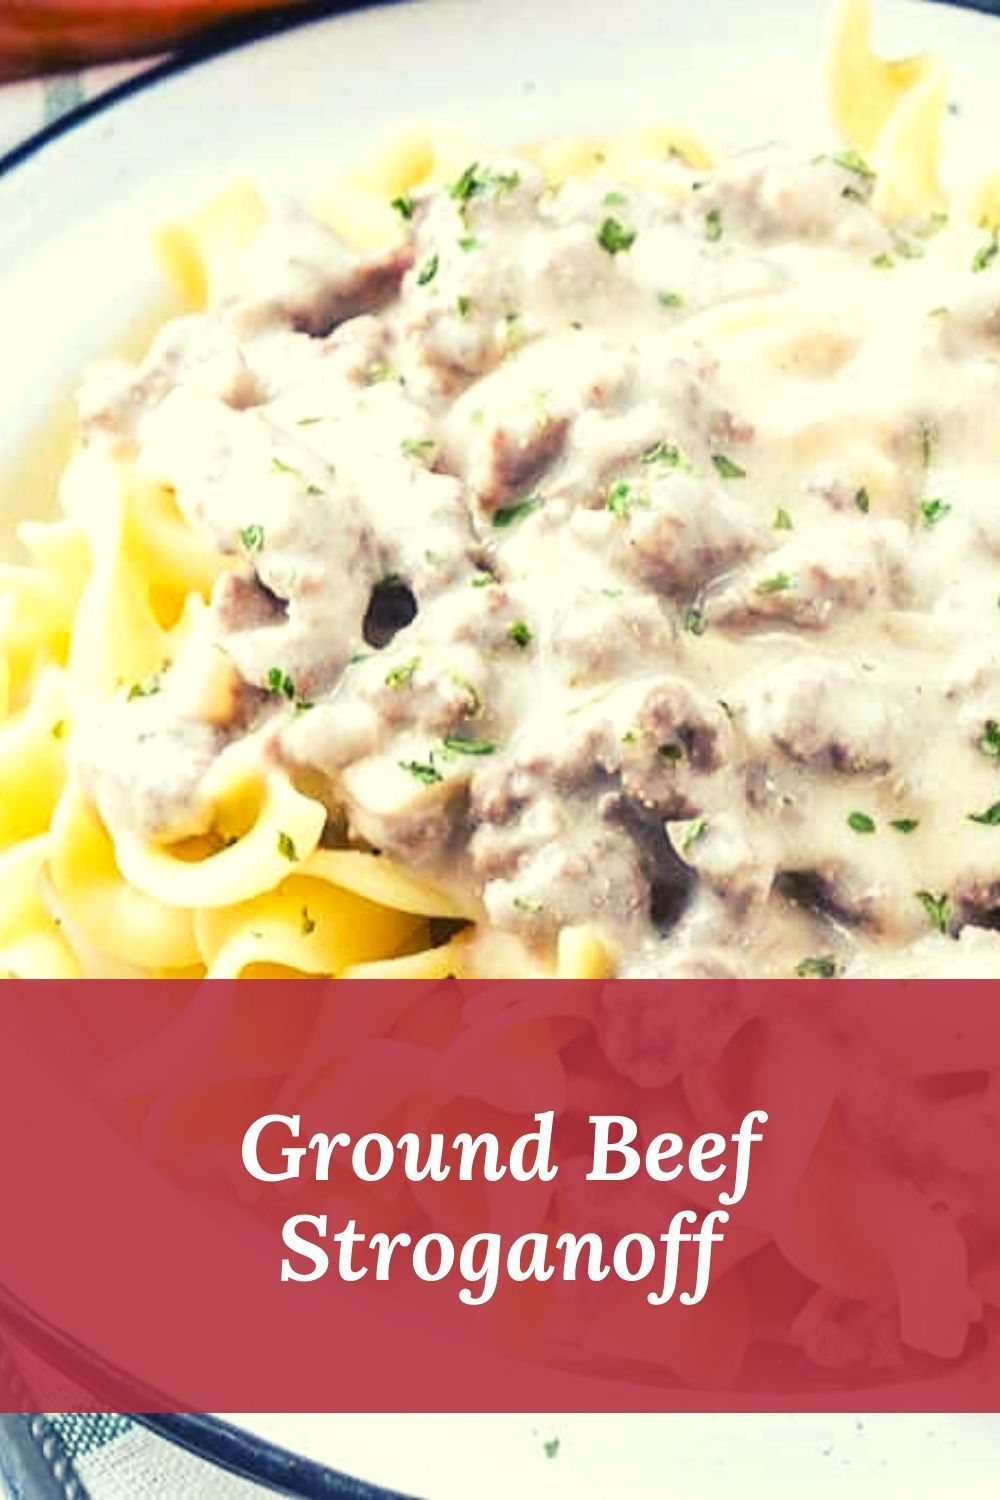 Ground Beef Stroganoff In 2020 Mexican Food Recipes Beef Beef Recipes Leftover Ground Beef Recipe